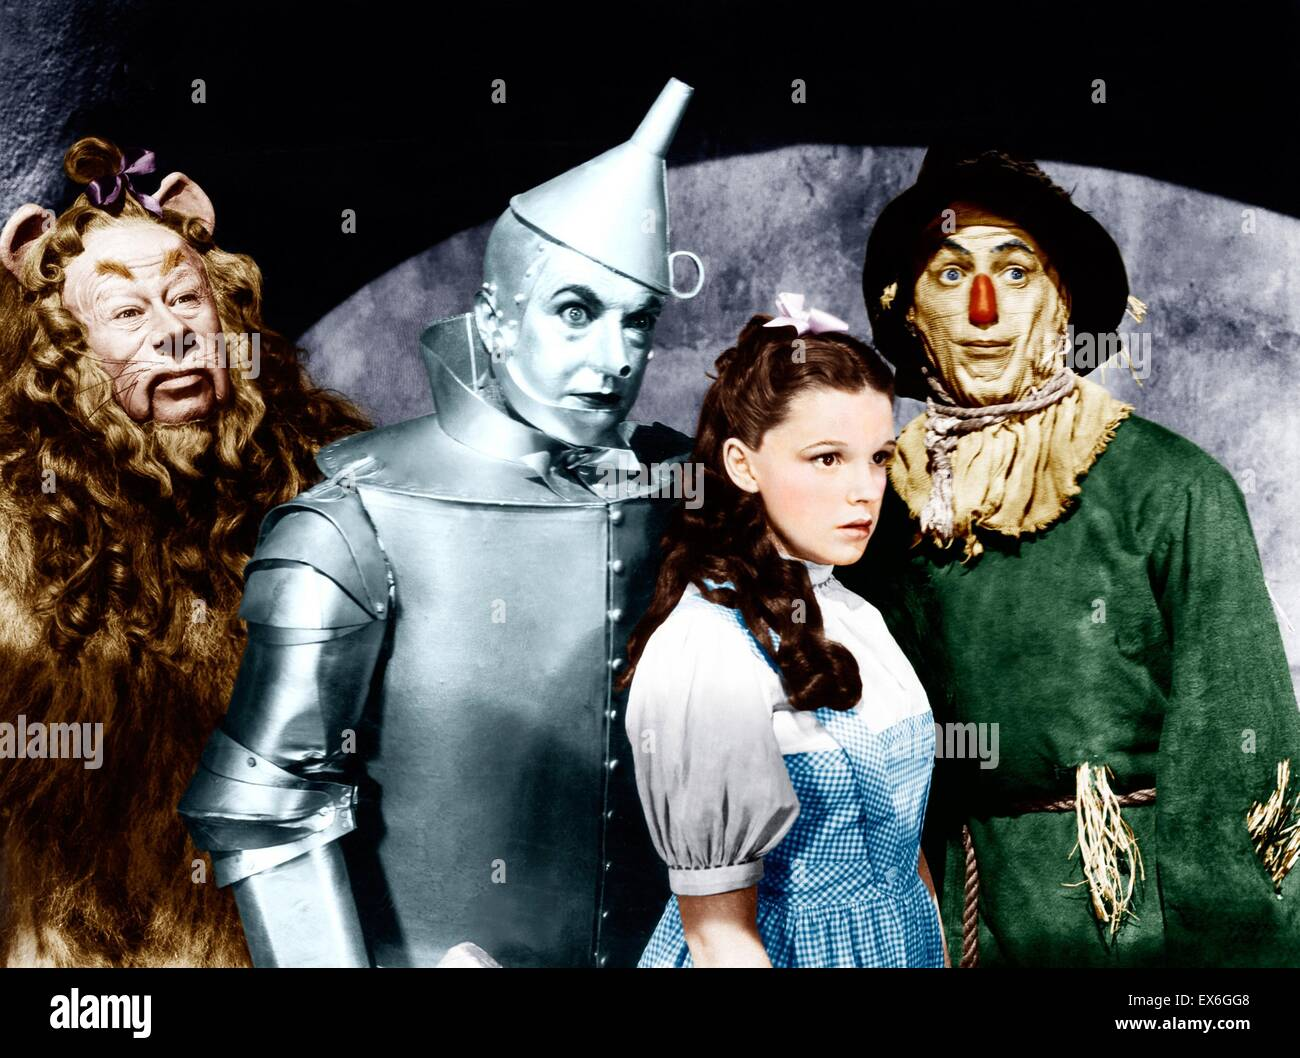 The Wizard of Oz is a 1939 American musical fantasy film produced by  Metro-Goldwyn-Mayer, and the most well-known and commercially successful  adaptation ...